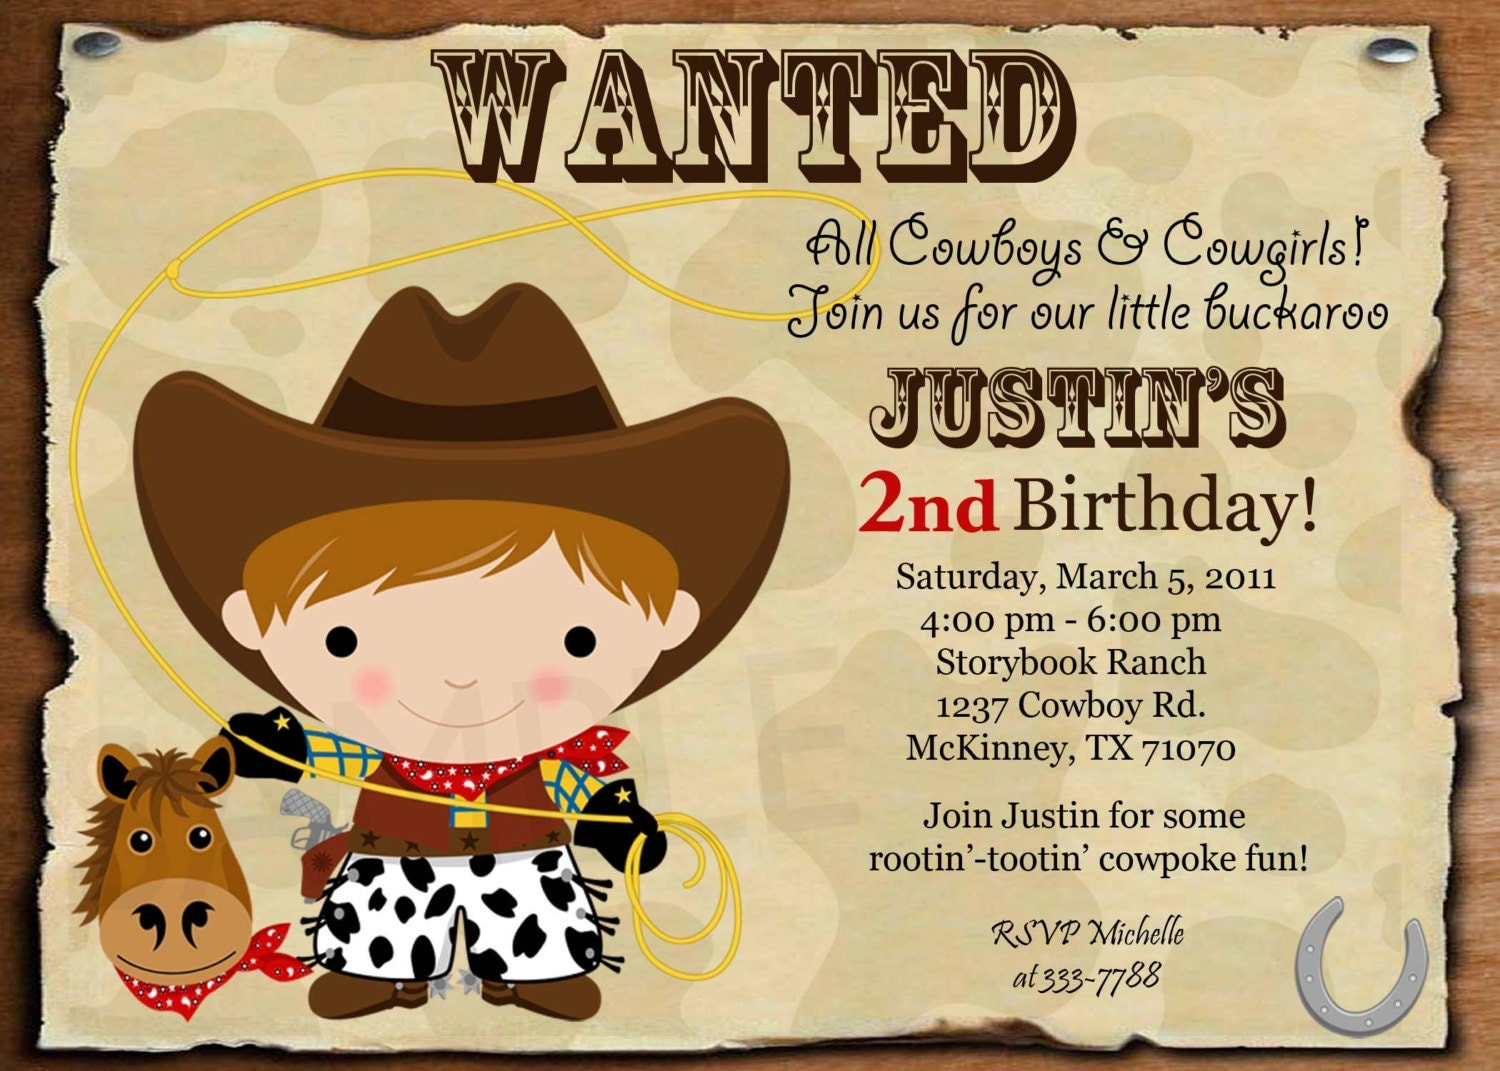 Cowboy Party Invitations and get inspiration to create nice invitation ideas